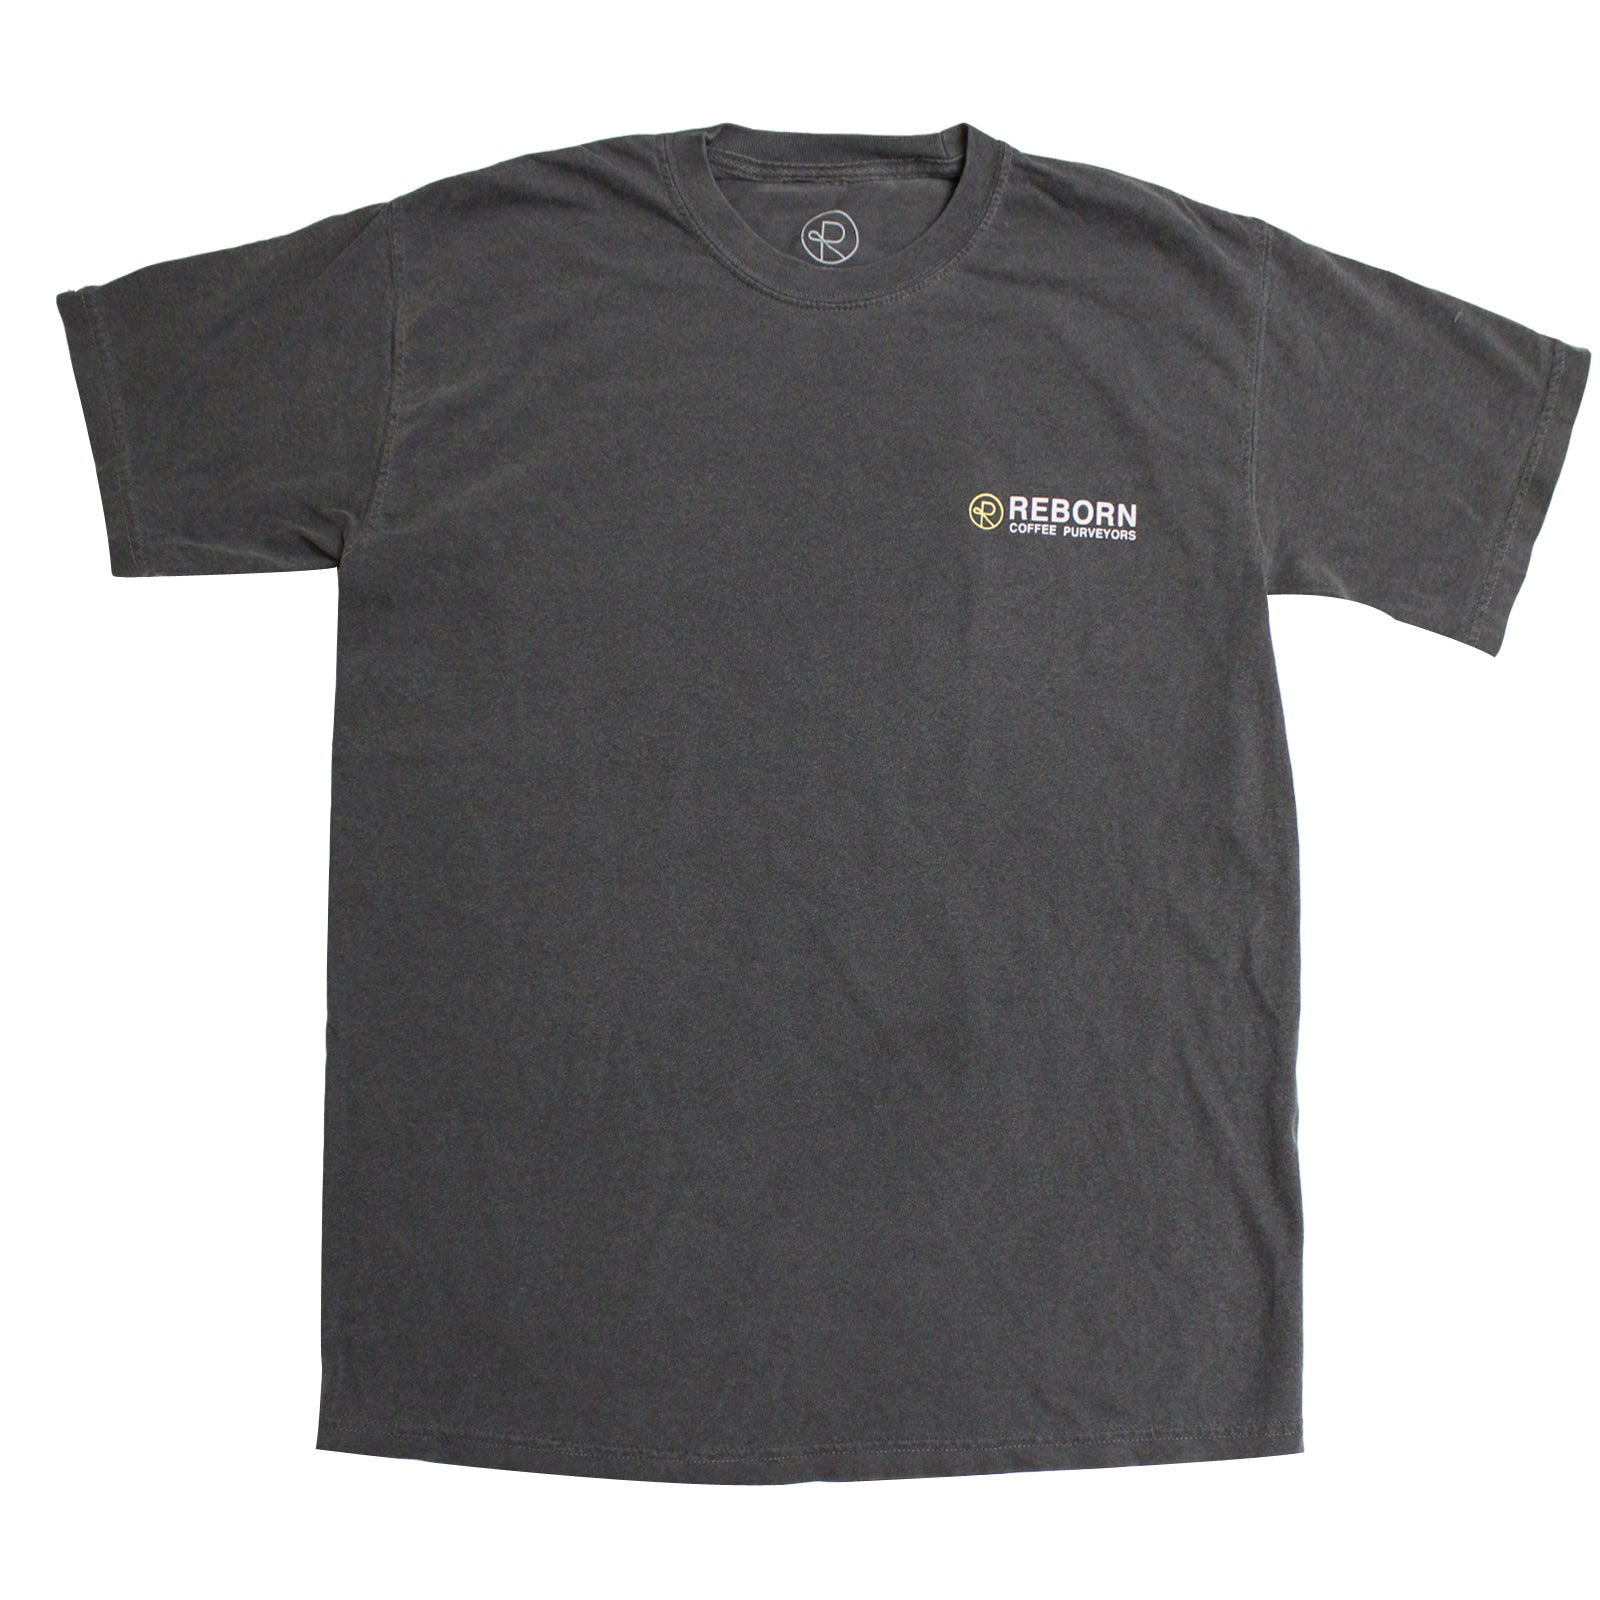 Reborn Coffee Purveyor 100% cotton custom T-Shirts